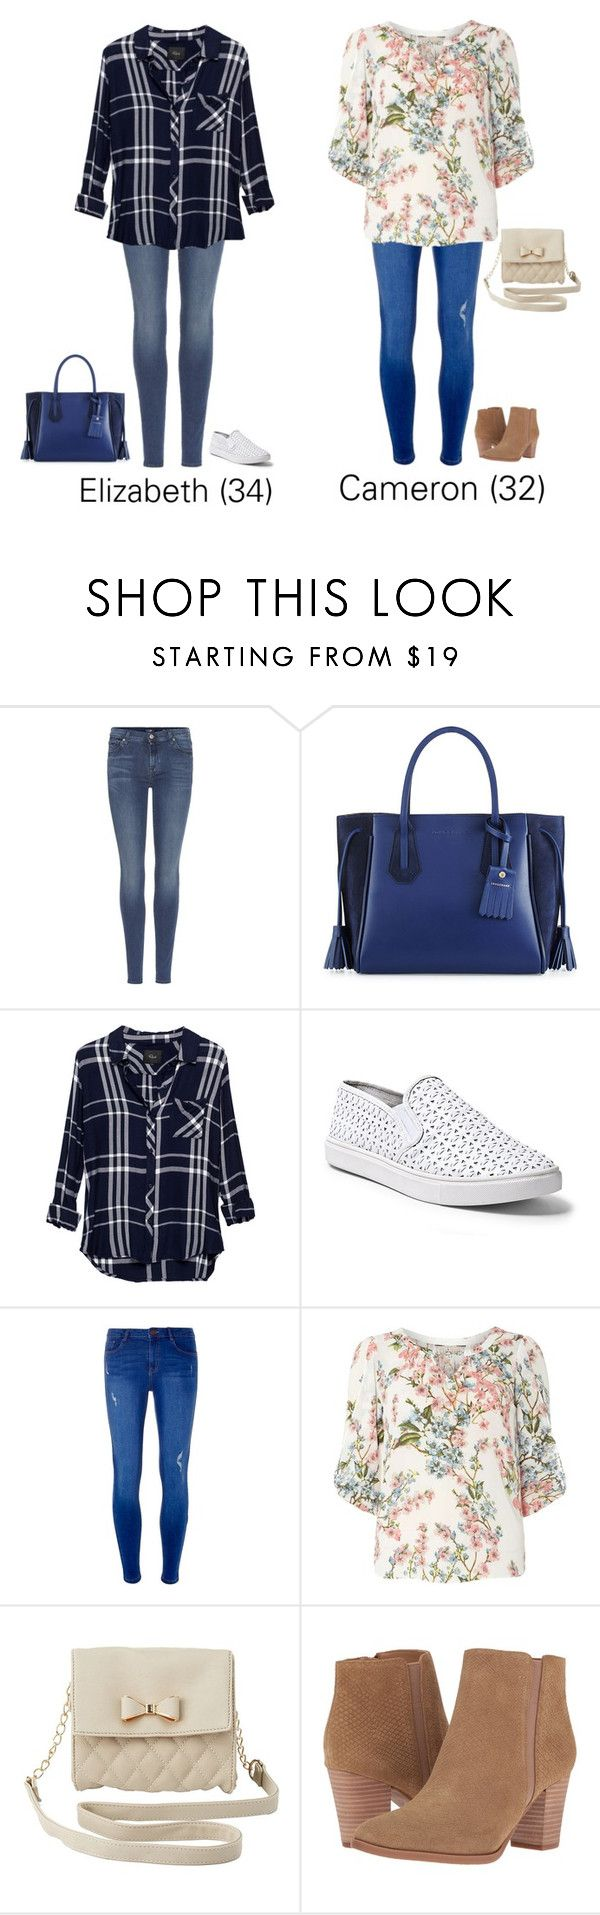 """Black Friday Shopping"" by thatcrazyfashionlady ❤ liked on Polyvore featuring 7 For All Mankind, Longchamp, Rails, Steve Madden, Dorothy Perkins, Billie & Blossom, Charlotte Russe and Franco Sarto"